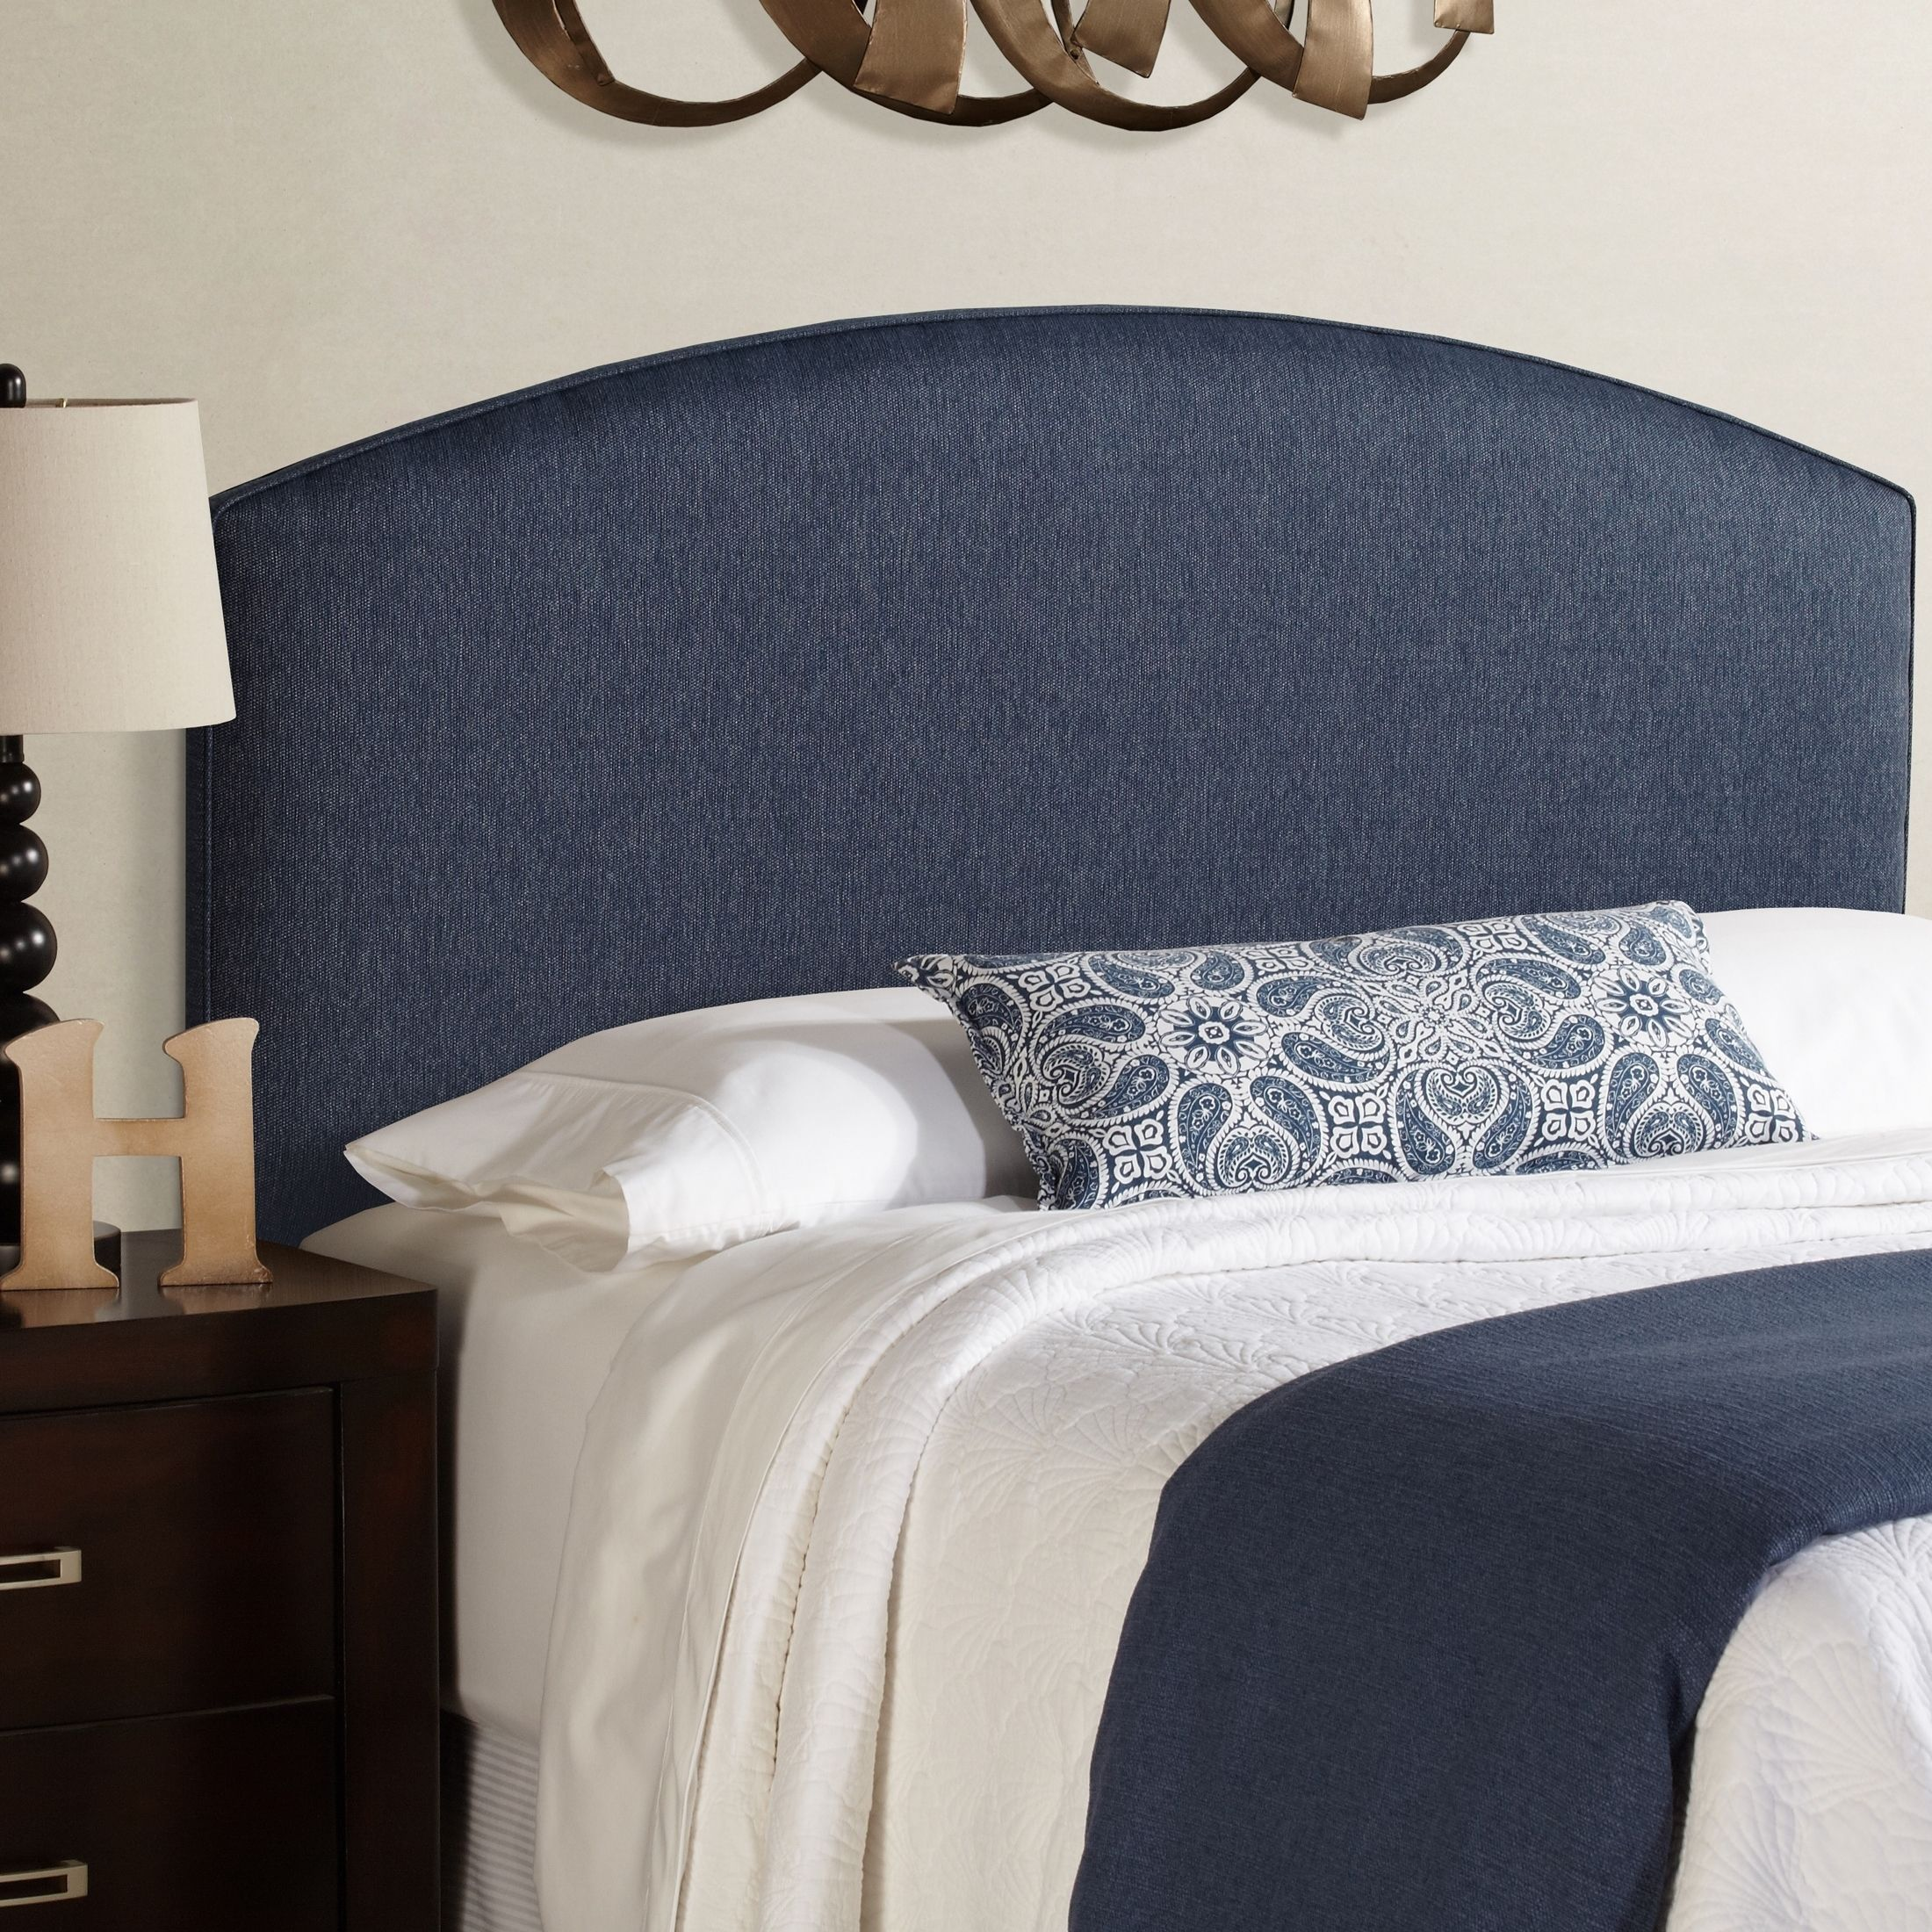 This King Size Upholstered Headboard Is Adjule To Accommodate A Wide Range Of Mattress Heights Beautiful Shades Blue Come Together On Highly